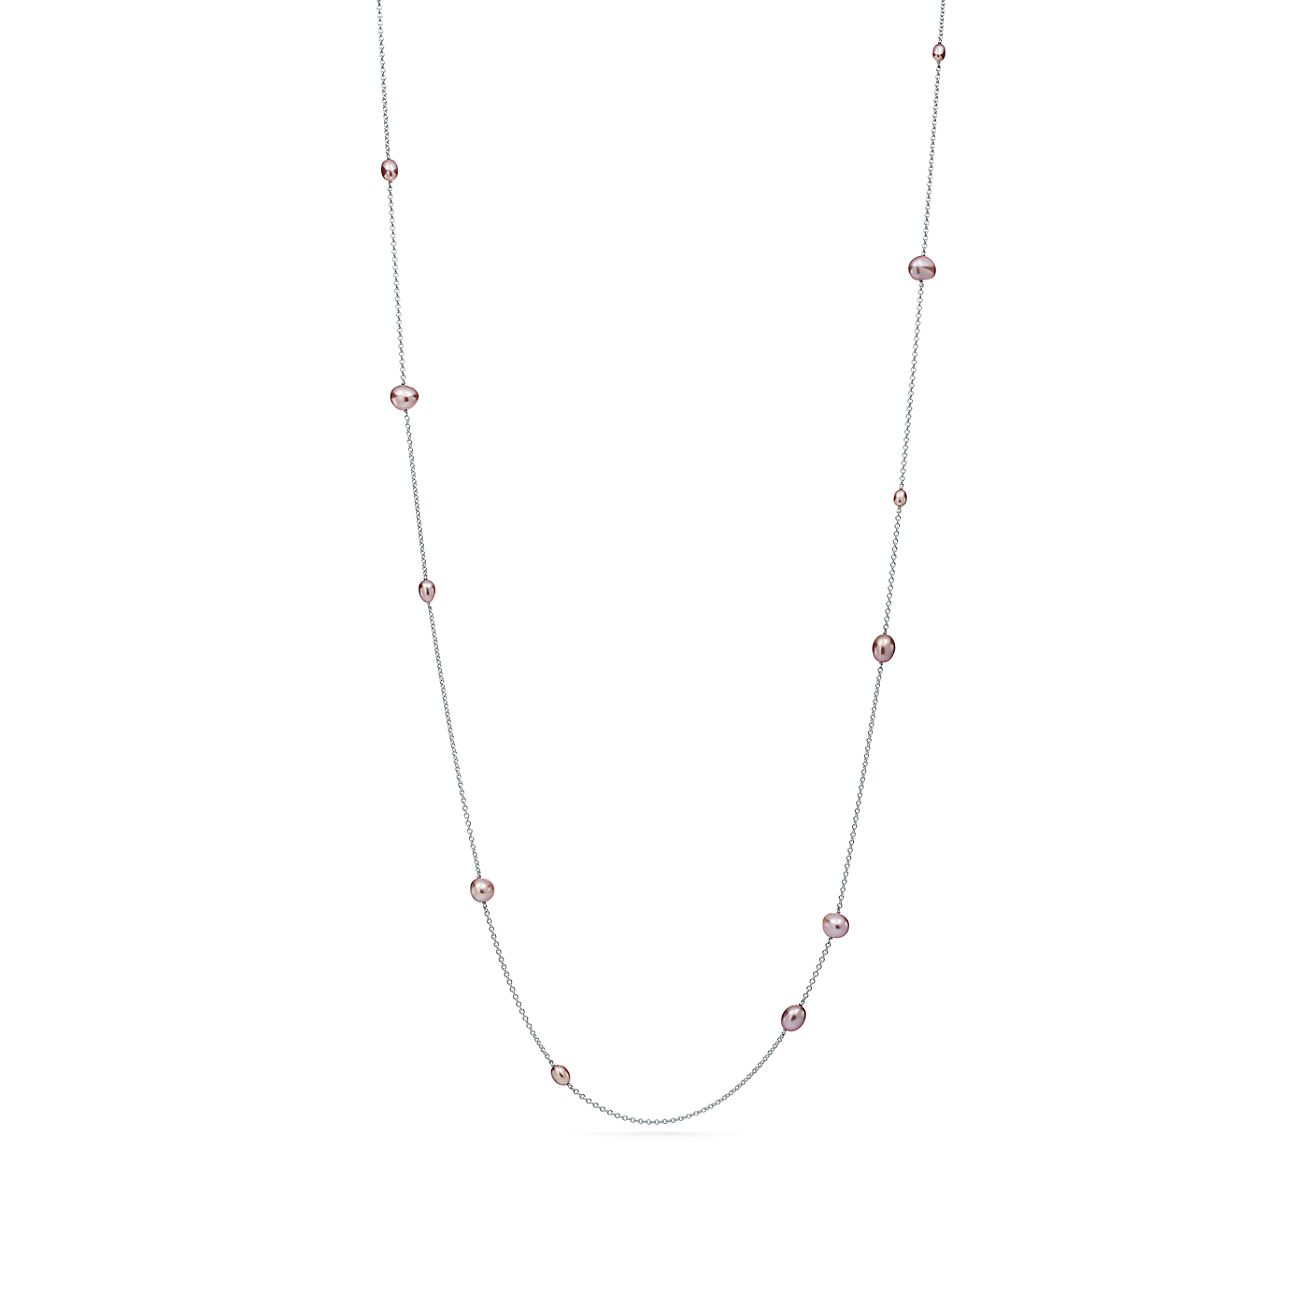 825c4b667 Elsa Peretti® Pearls by the Yard™ sprinkle necklace of cultured pearls in  silver · Tiffany & Co.